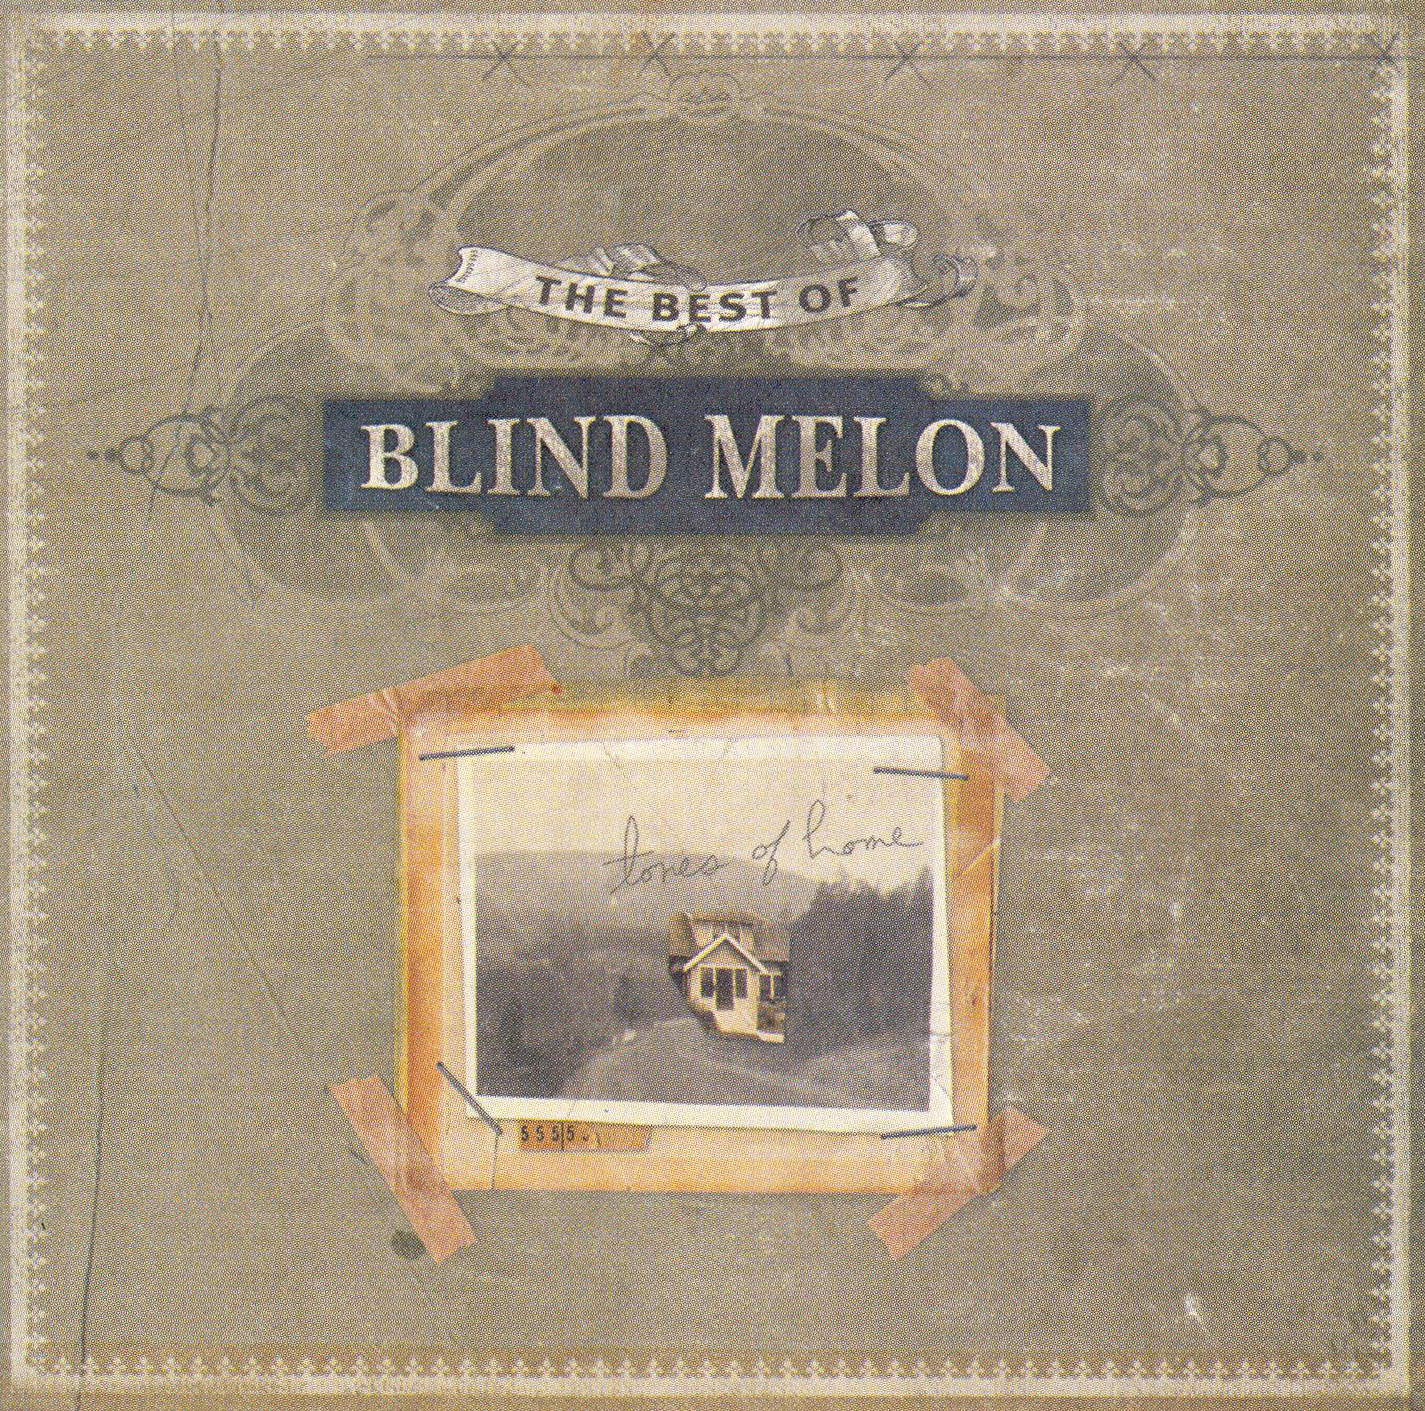 Blind Melon: Tones of Home - The Best of Blind Melon